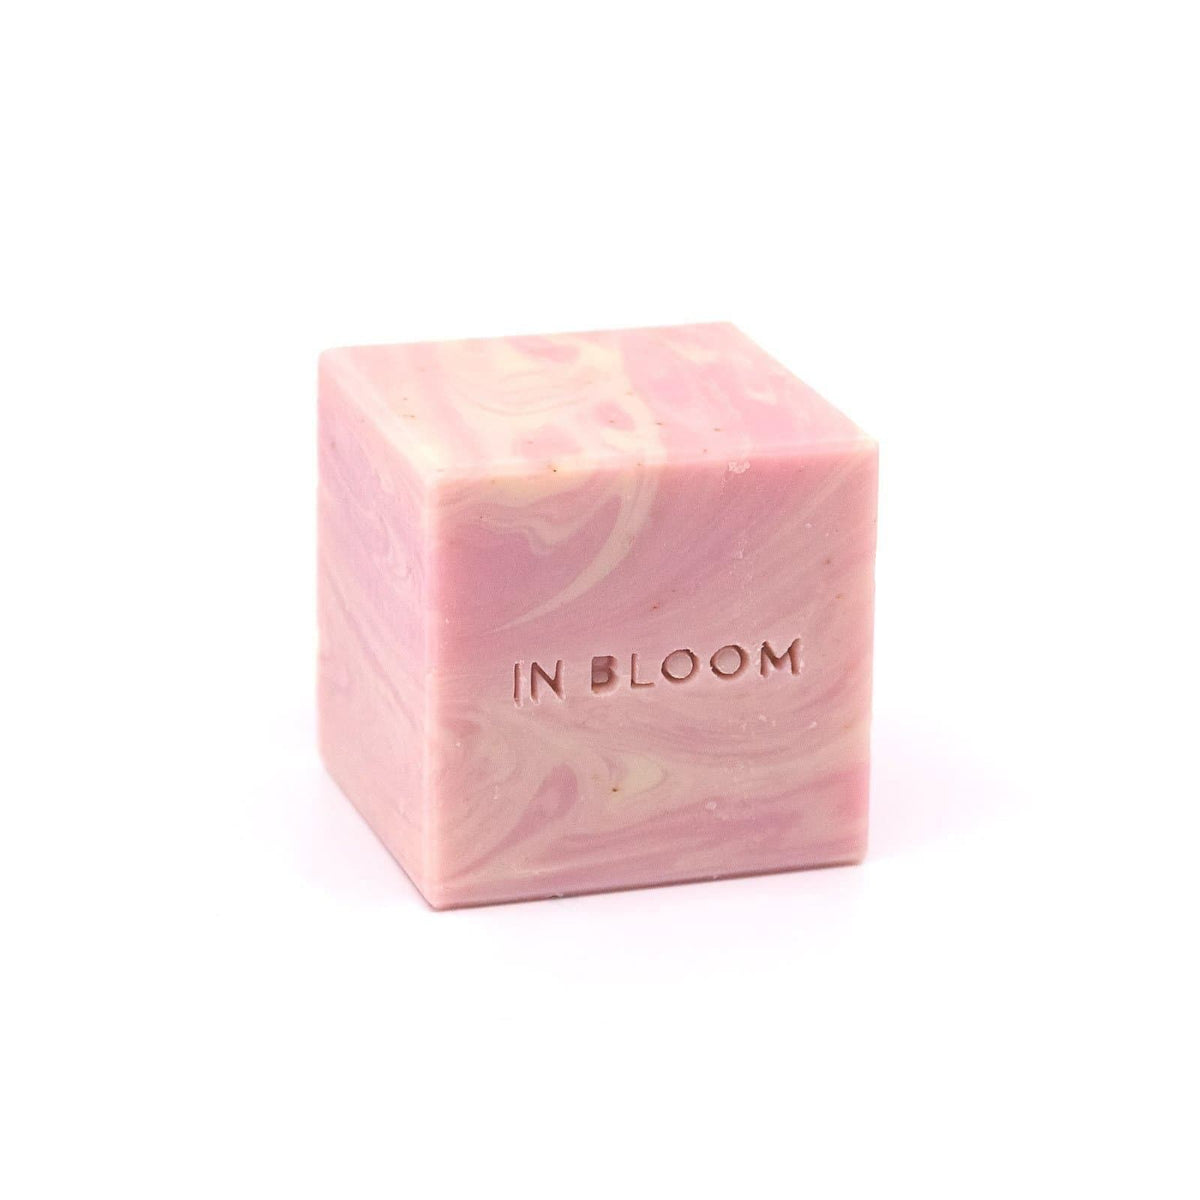 In Bloom - Rose & Orange Peel Bar Soap-Soap Bar-MOTE-120g-Totem Store